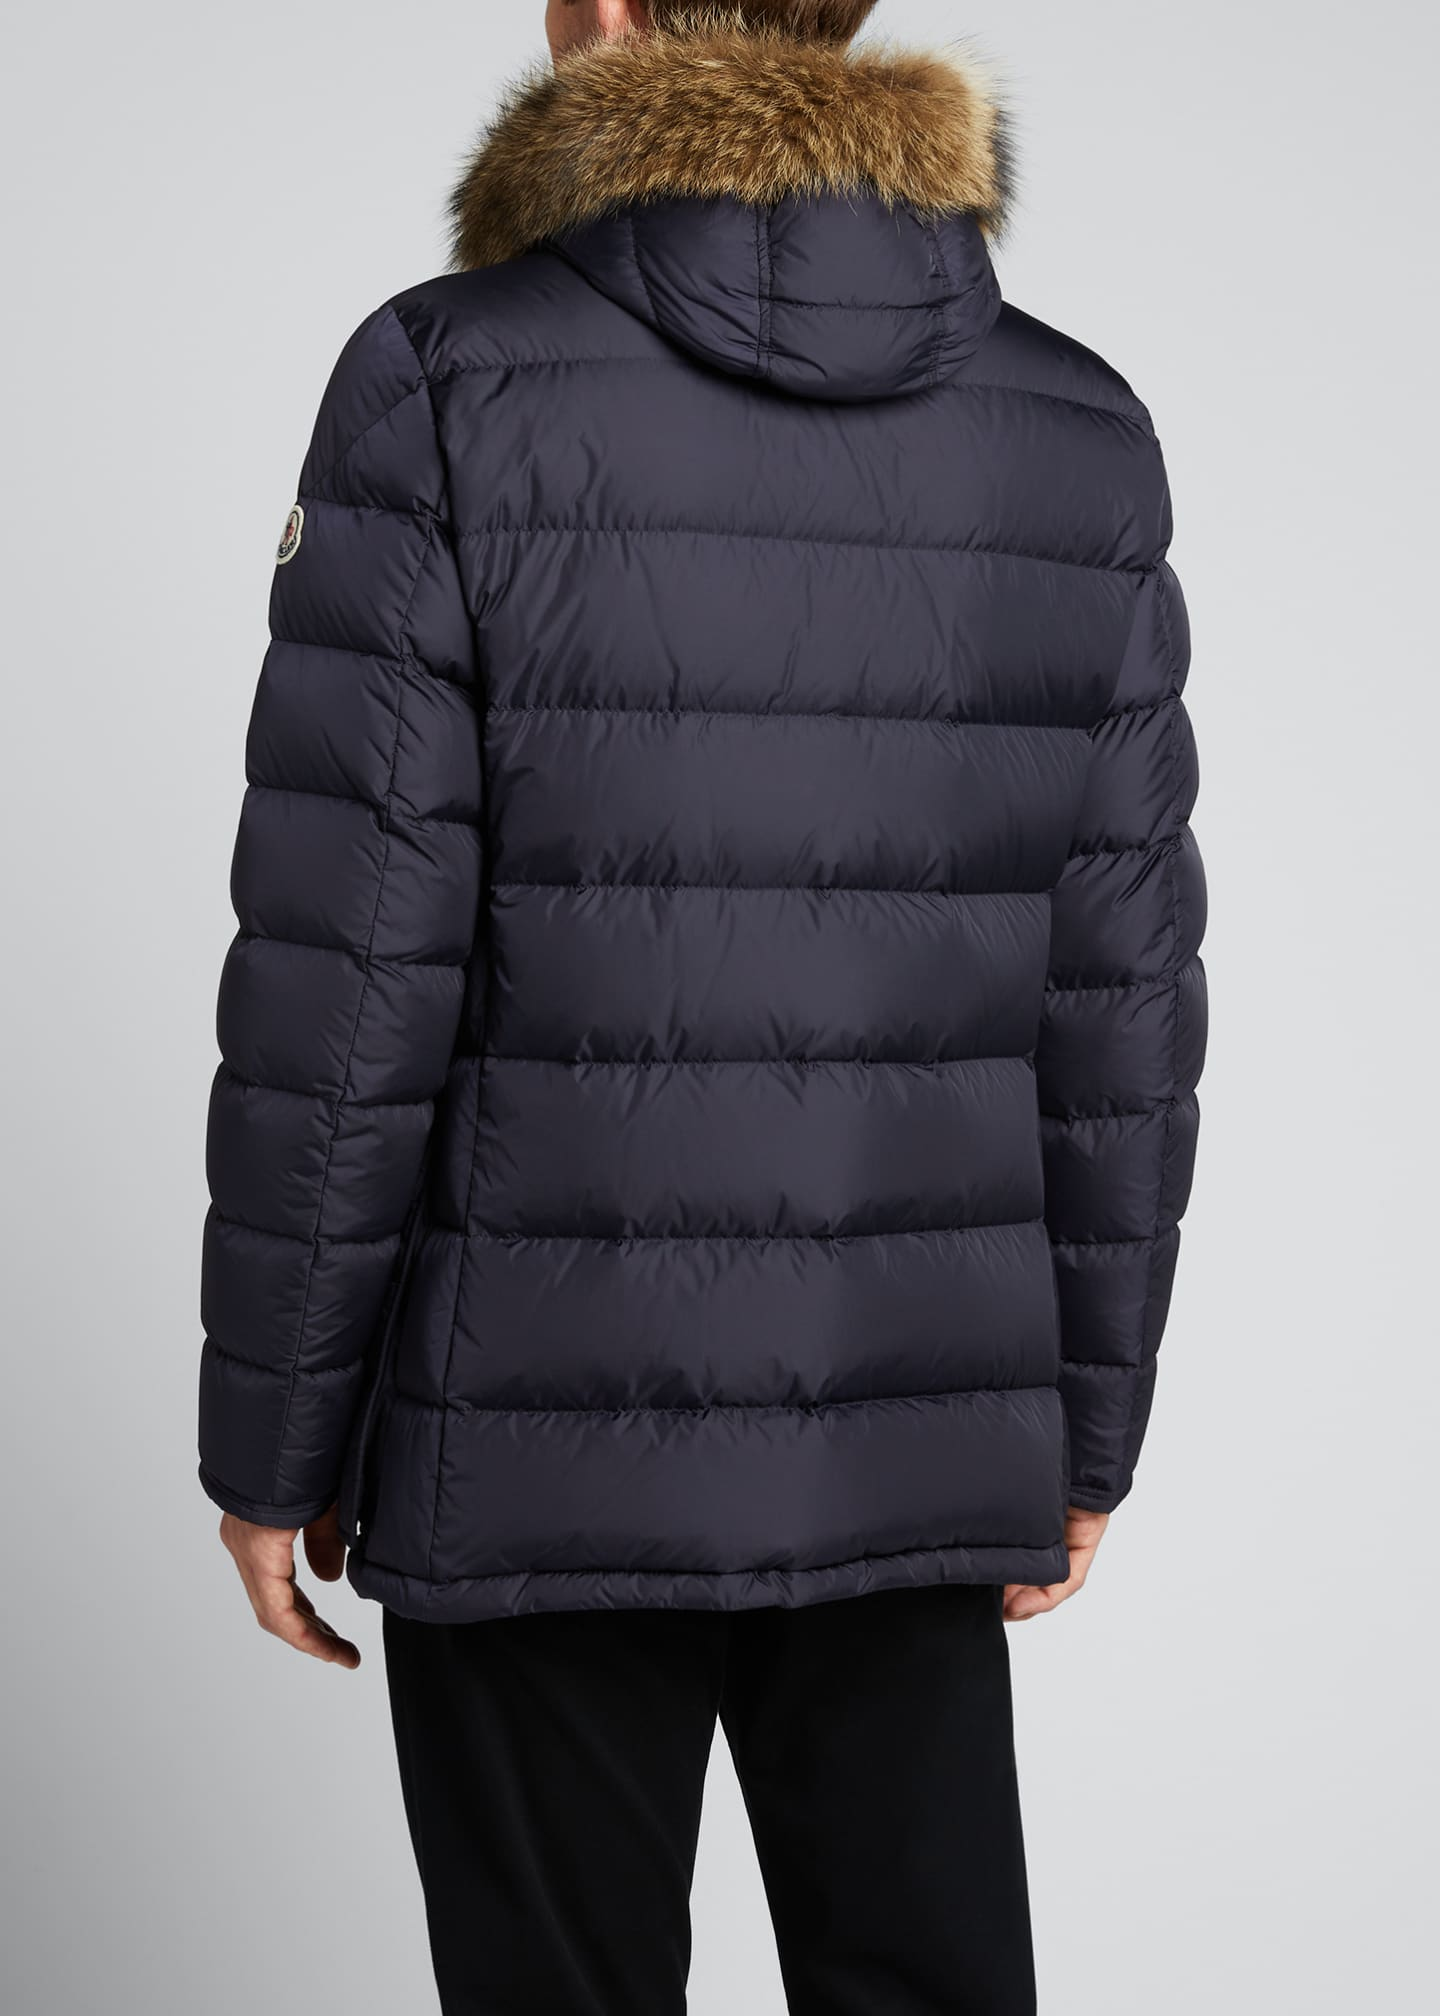 Image 2 of 5: Men's Cluny Quilted Puffer Jacket w/ Fur Trim